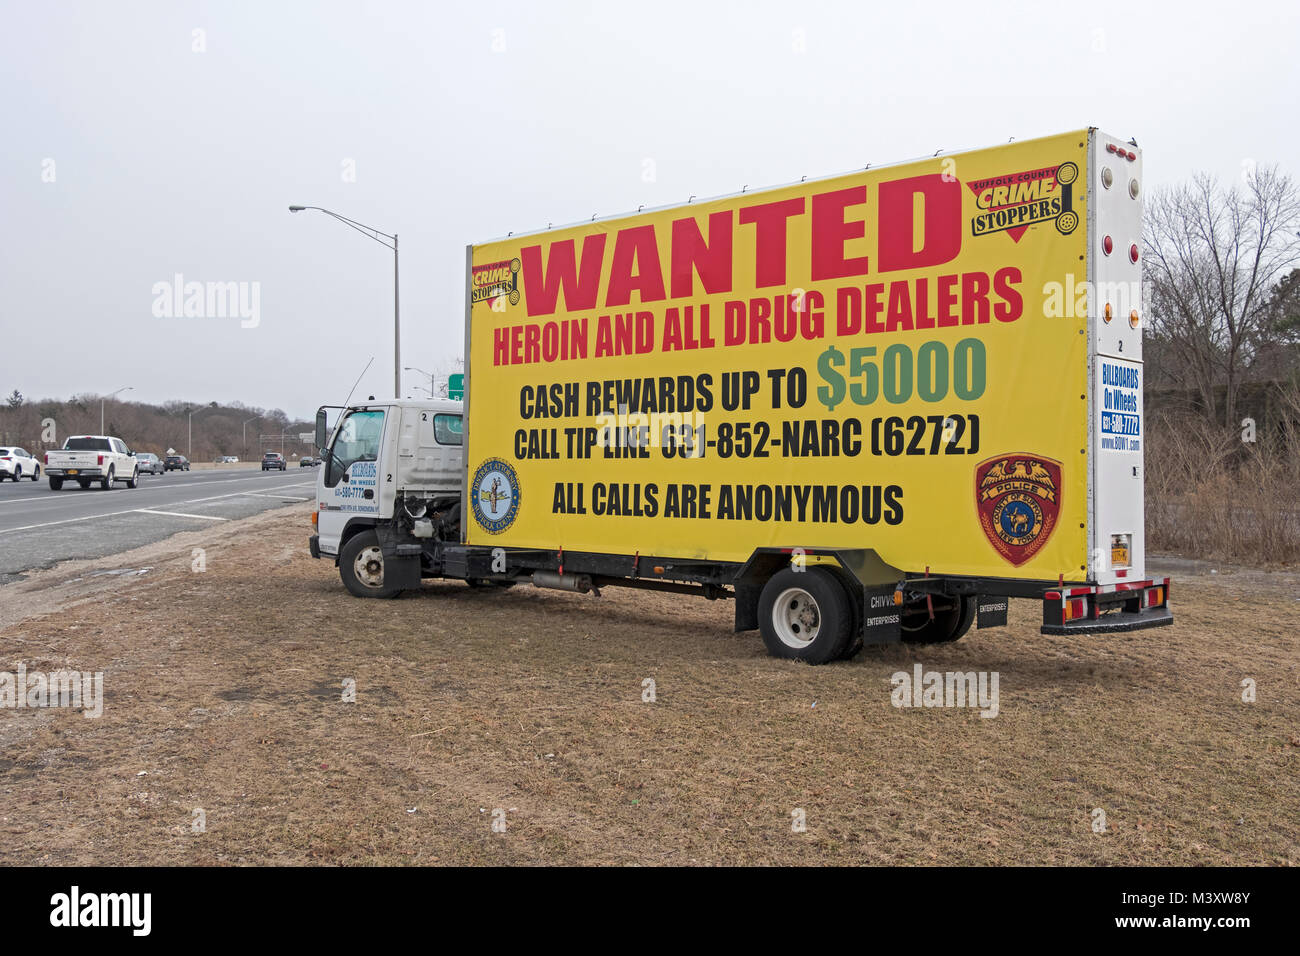 An Billboards on Wheels trailer off the Long Island Expressway asking people to report drug dealers to the police.in Stock Photo